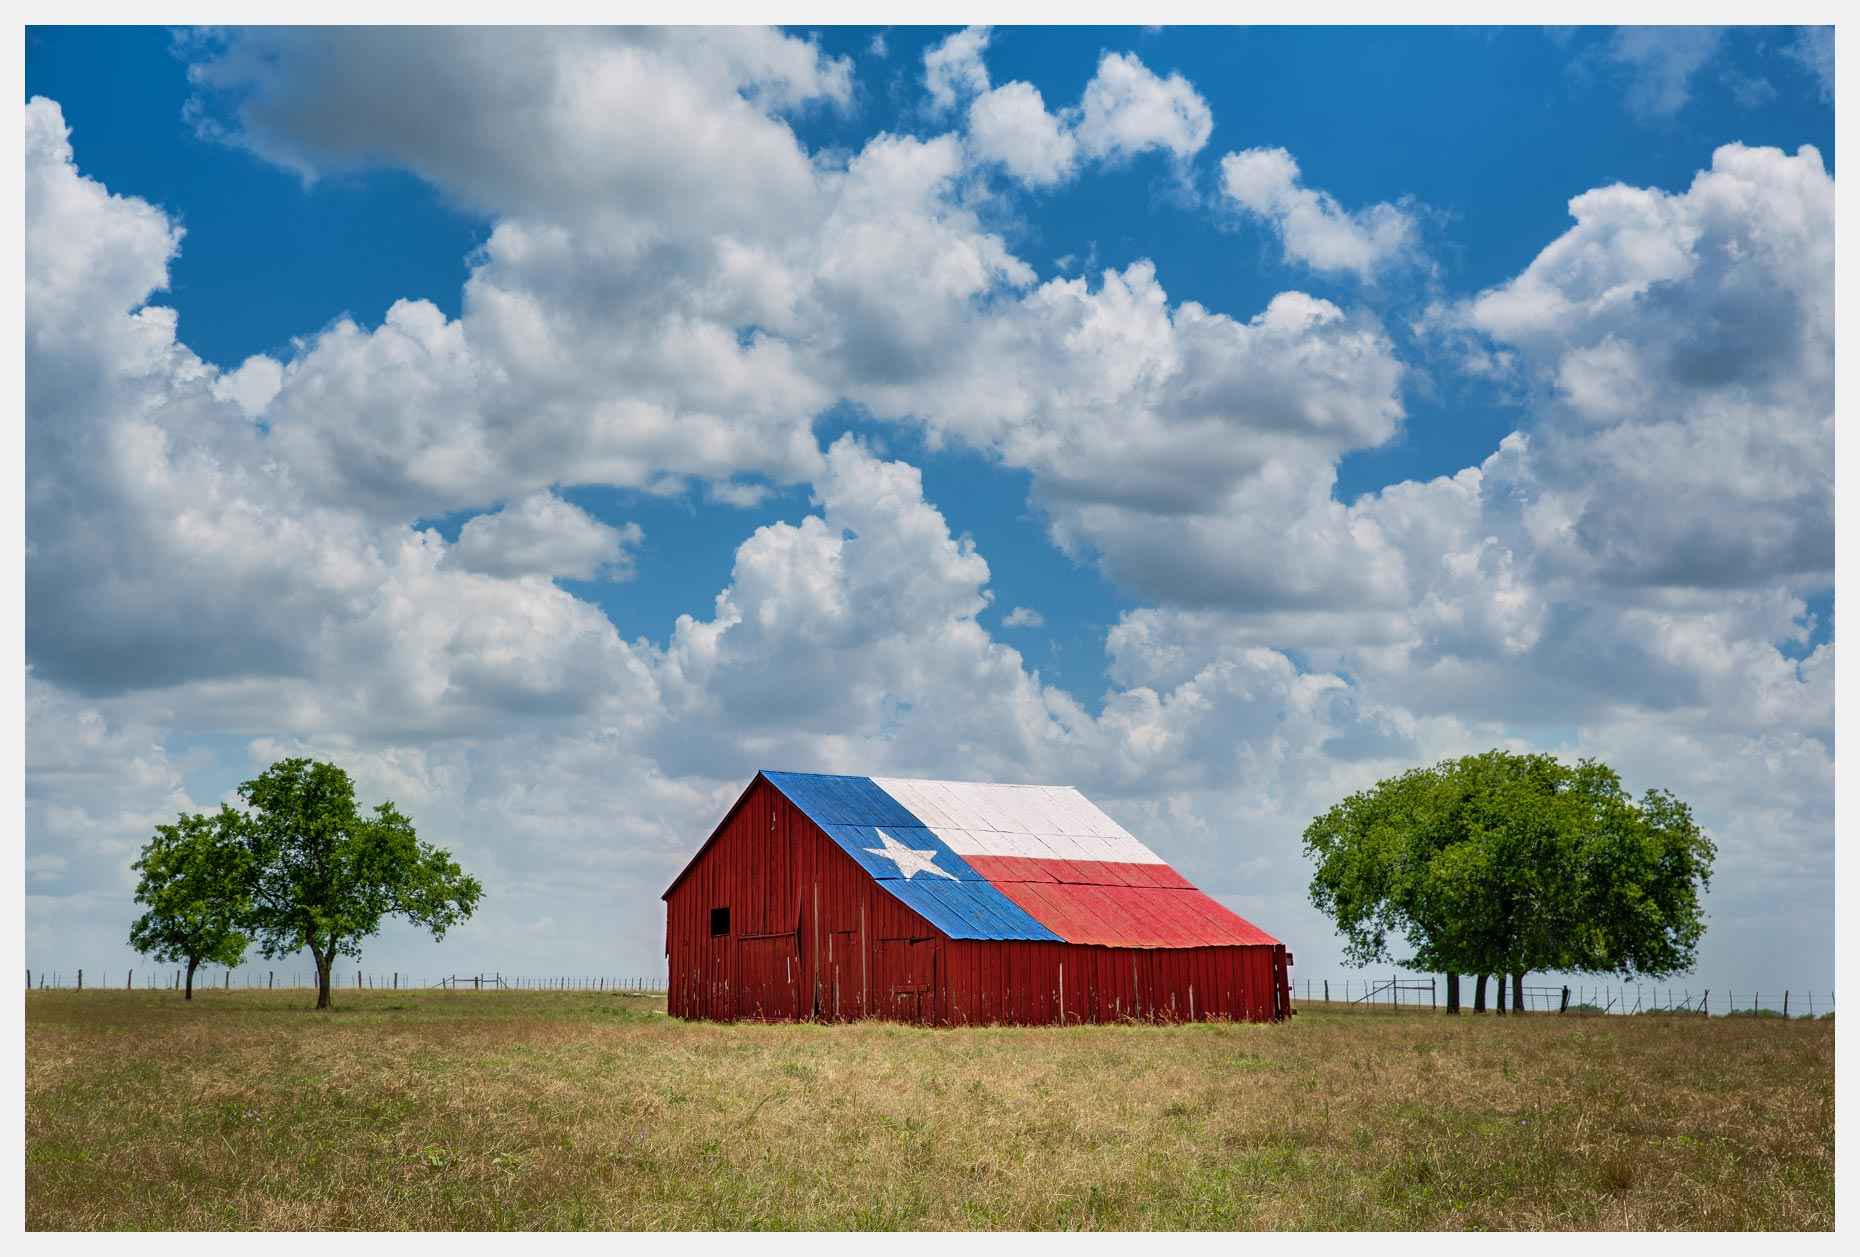 Texas-Barn-With-Lone-Star-Flag-and-White-Clouds